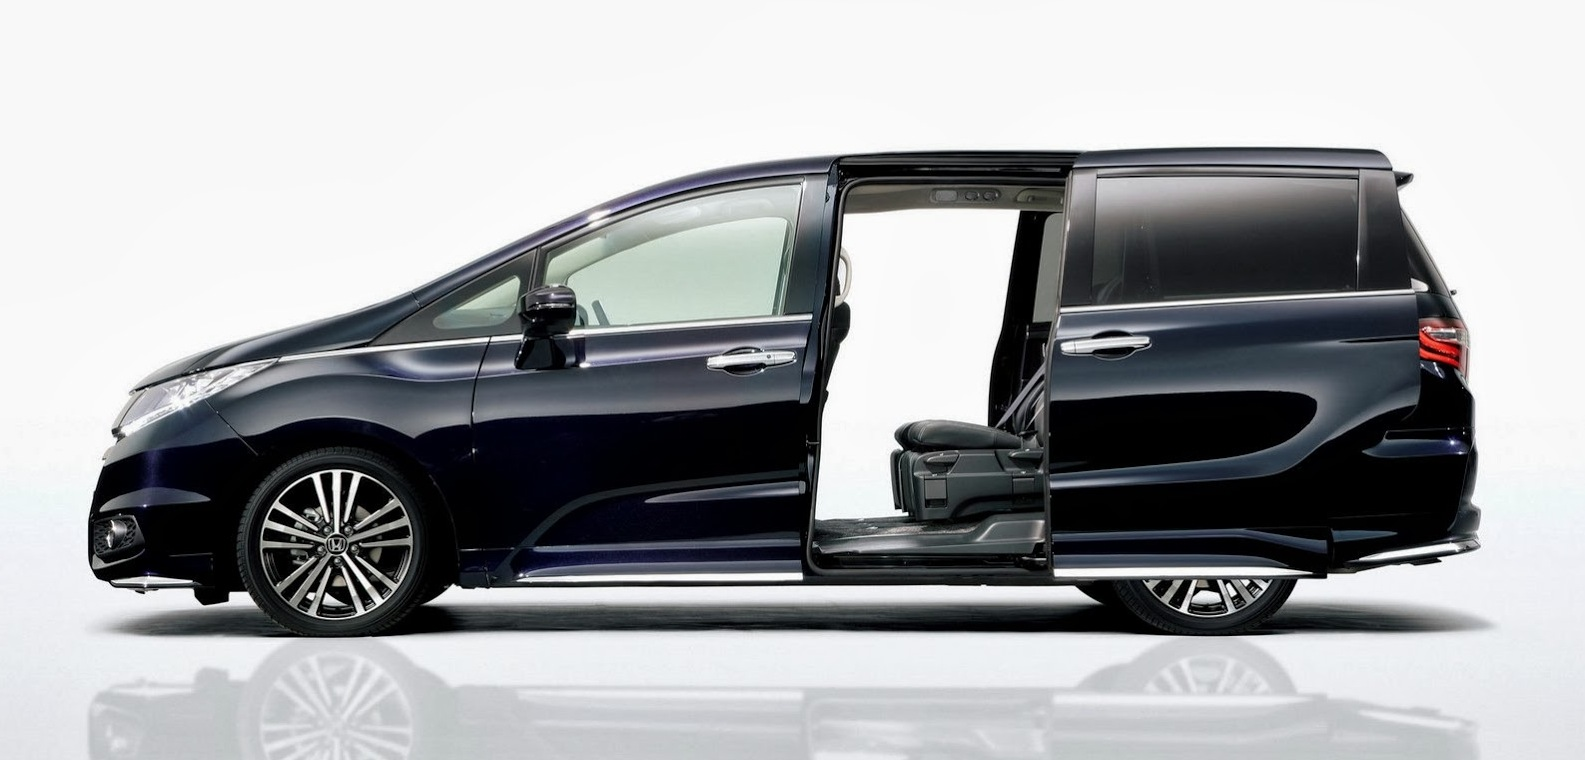 honda odyssey fifth gen people mover revealed photos caradvice. Black Bedroom Furniture Sets. Home Design Ideas